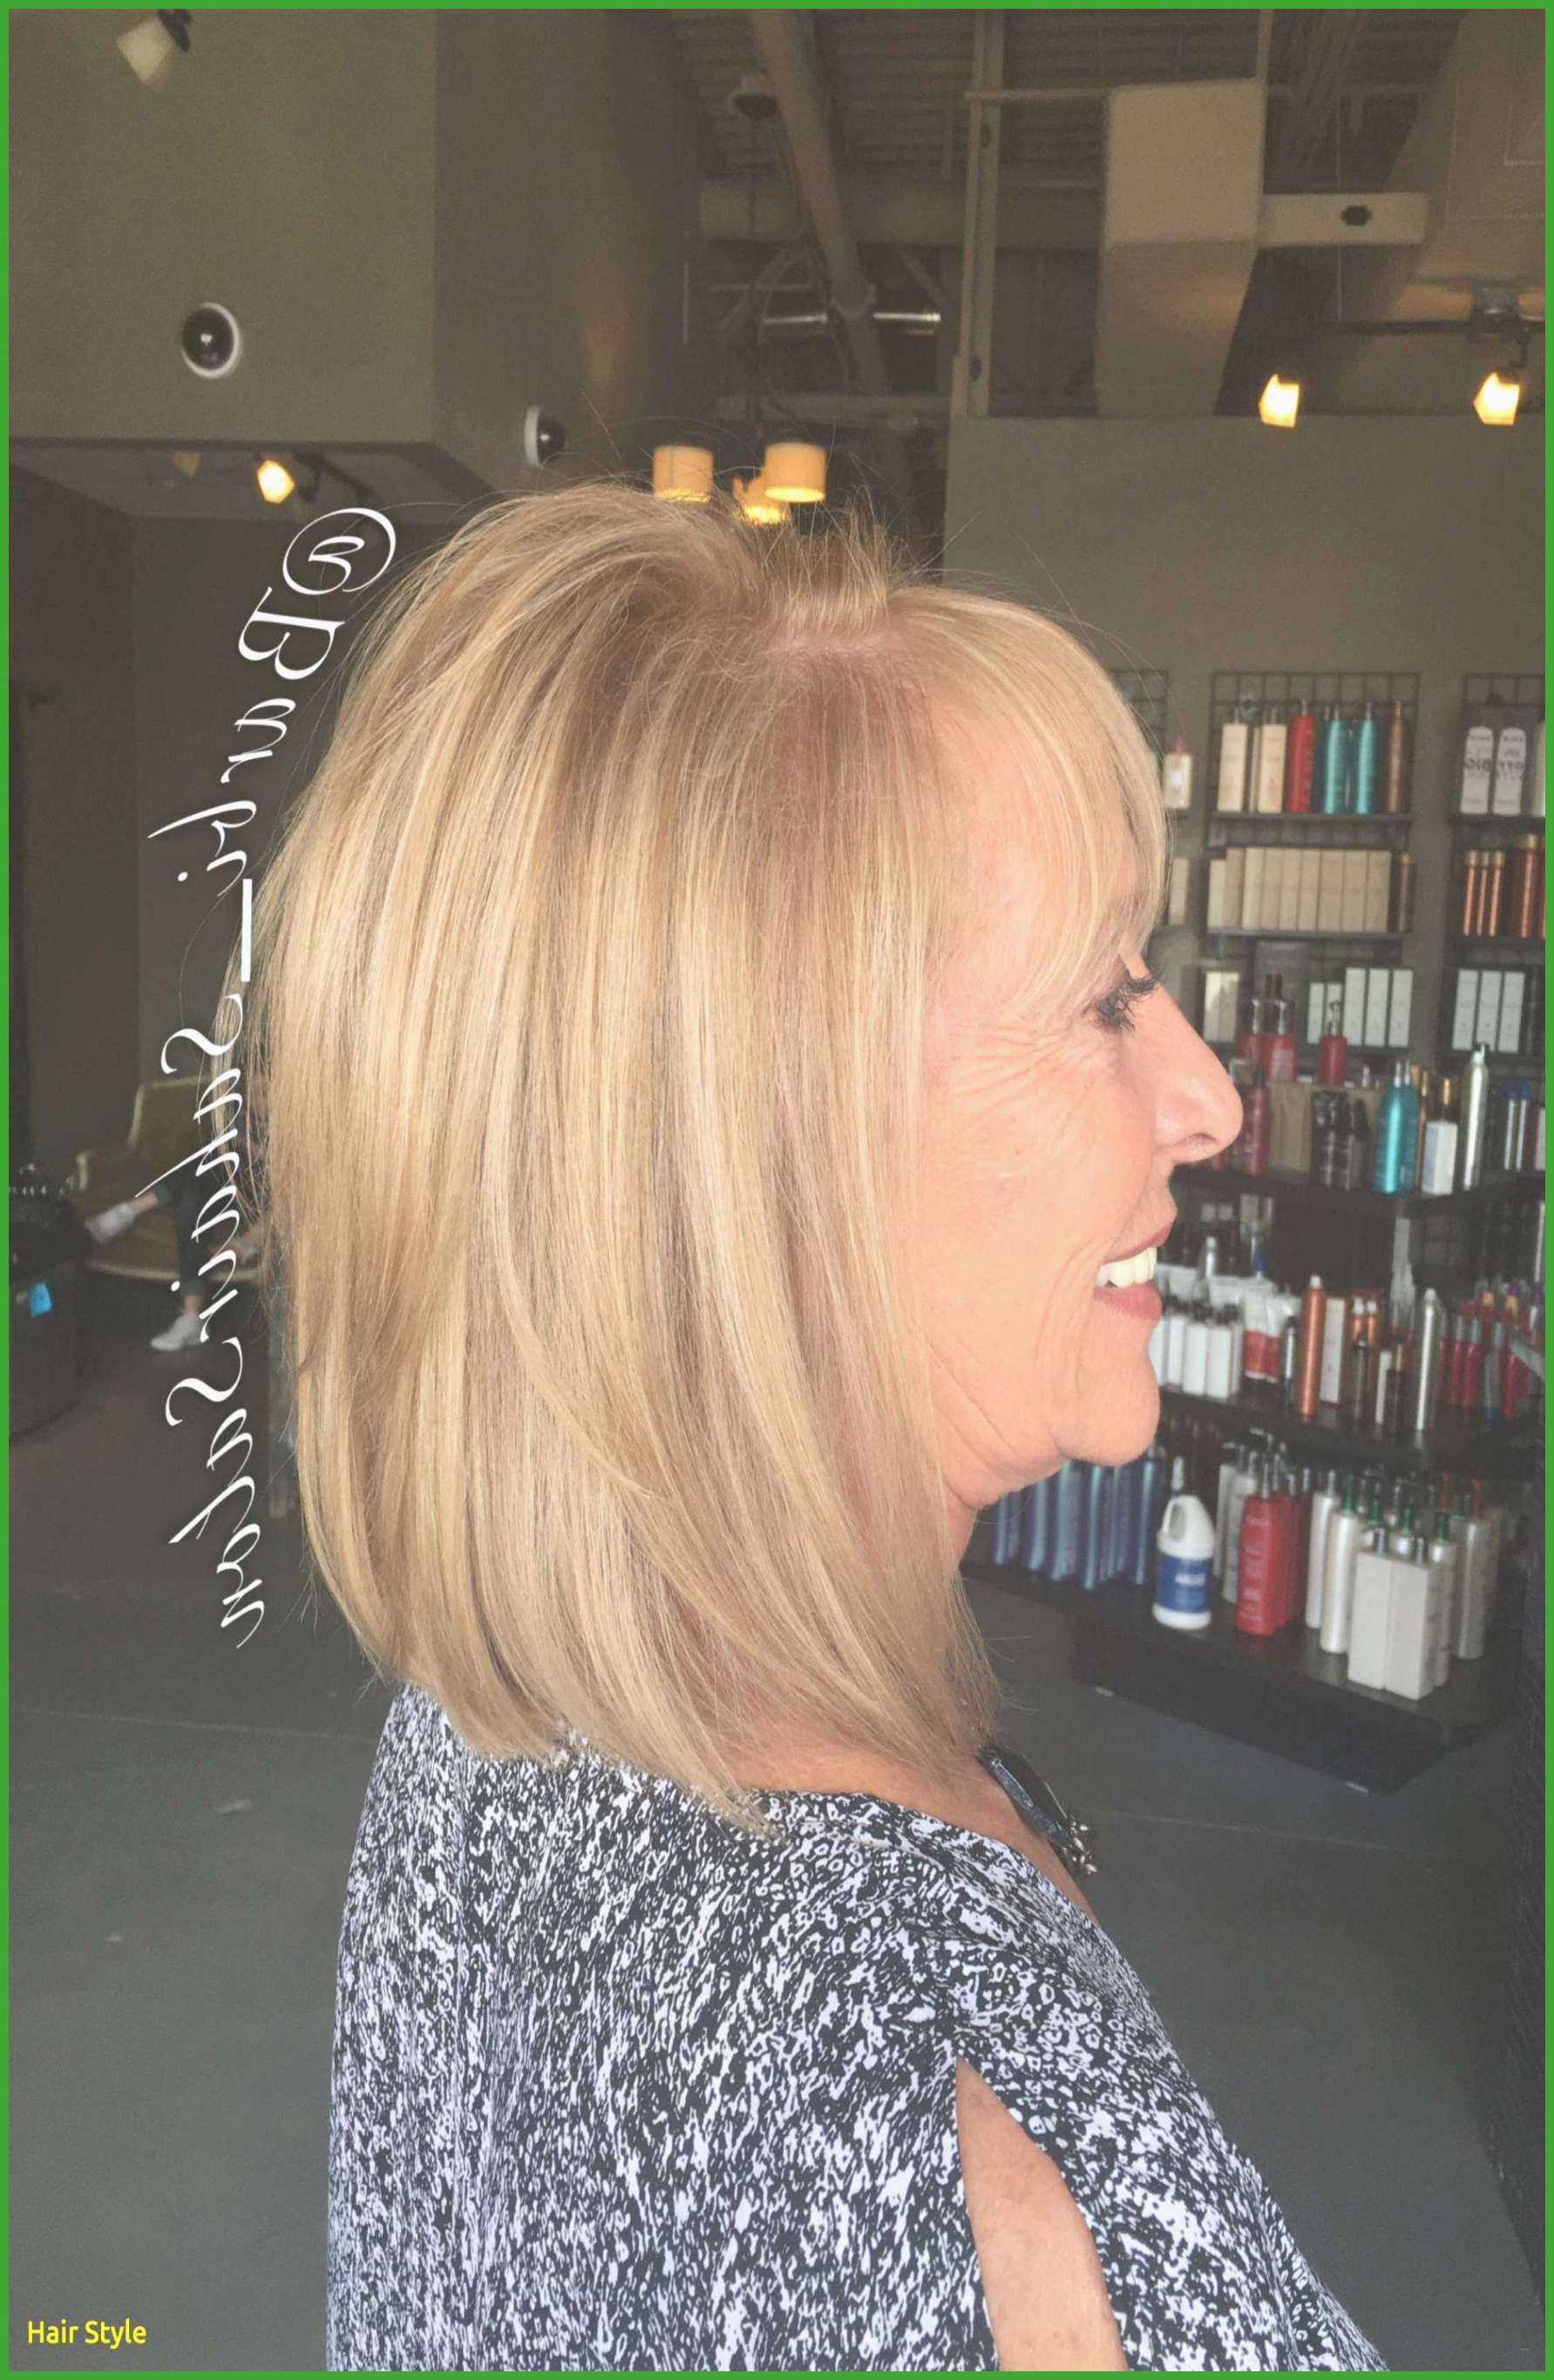 Short Length Layered Hairstyles For Thick Hair Inspirational Best 20 Pertaining To Medium To Short Haircuts For Thick Hair (View 25 of 25)